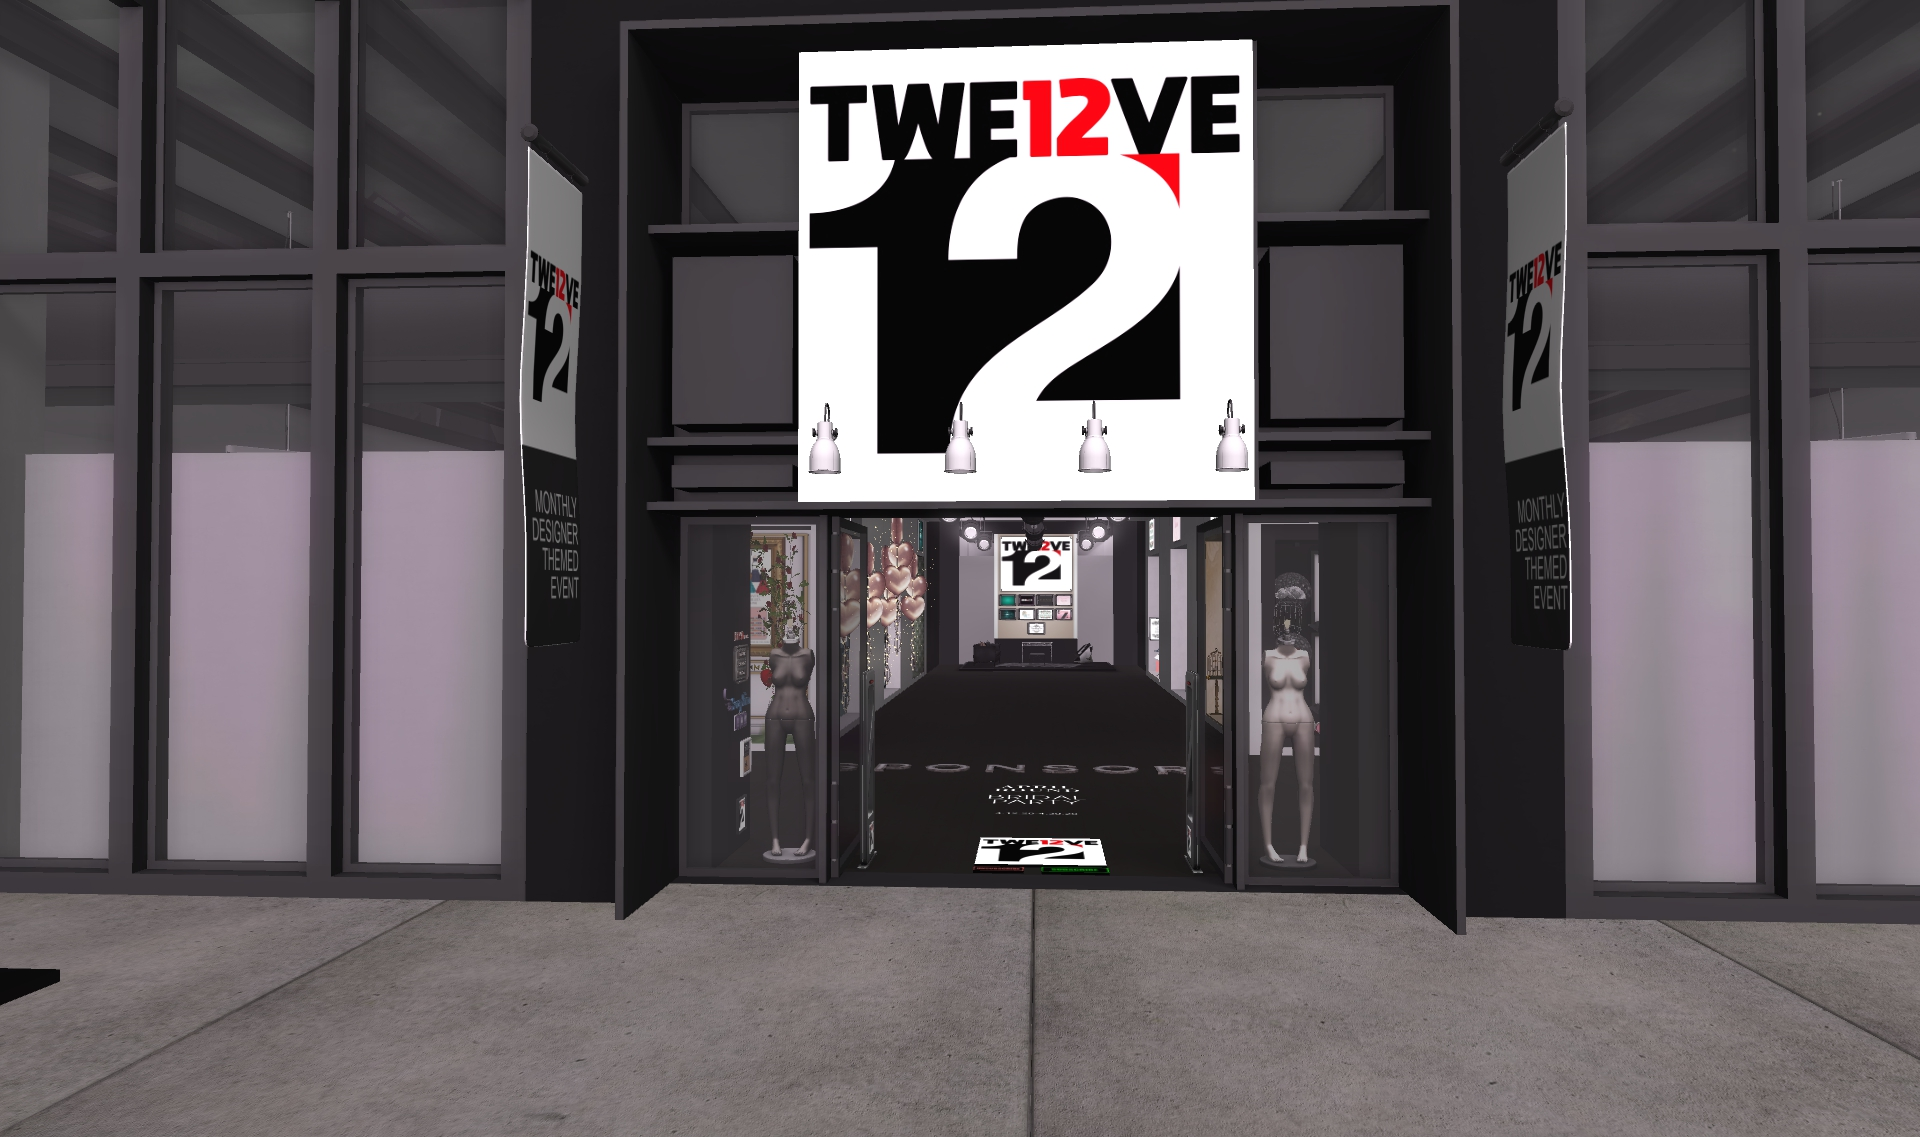 twe12ve april 2020 entrance_001